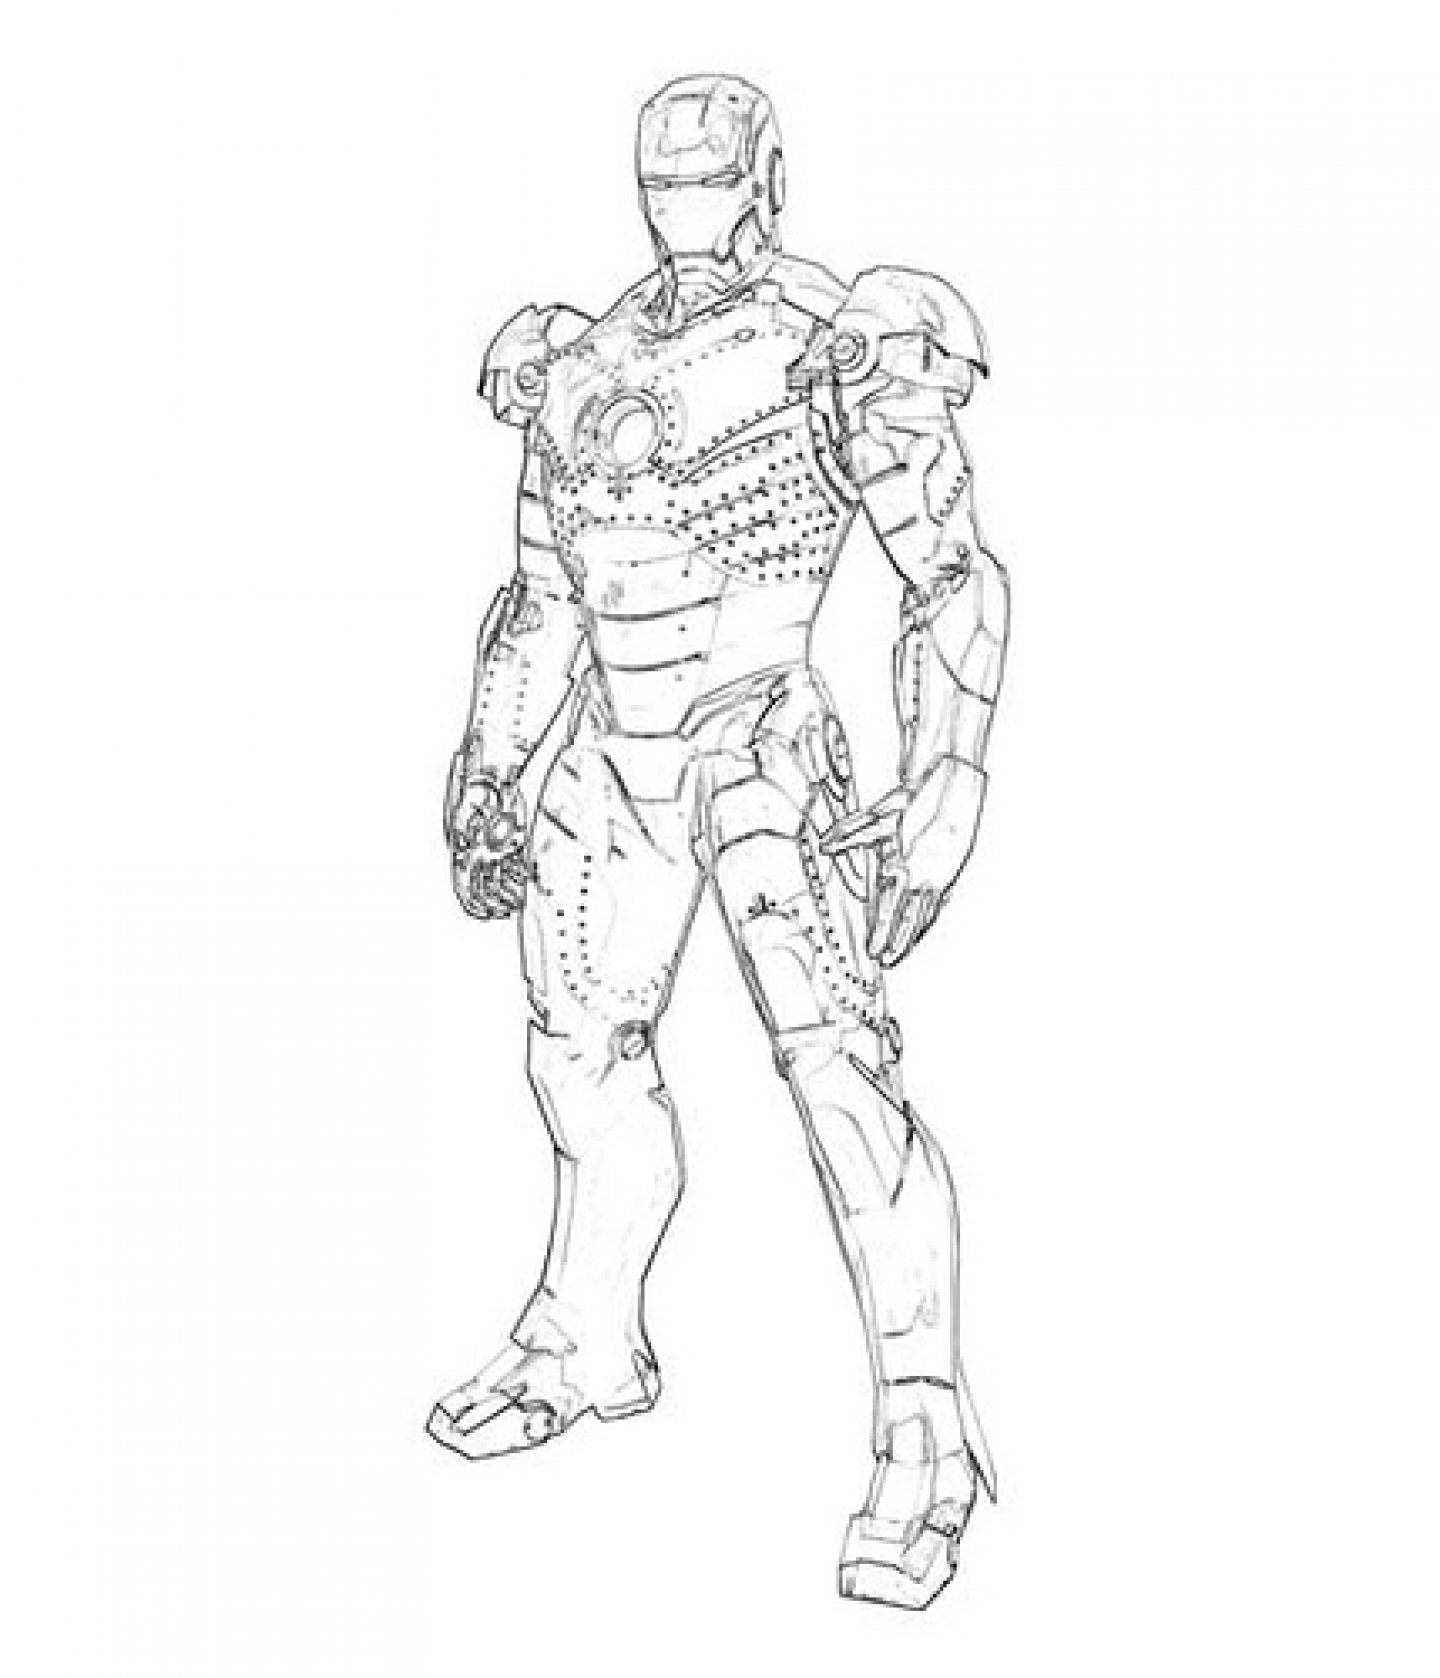 colouring pages iron man iron man coloring pages free printable coloring pages colouring pages iron man